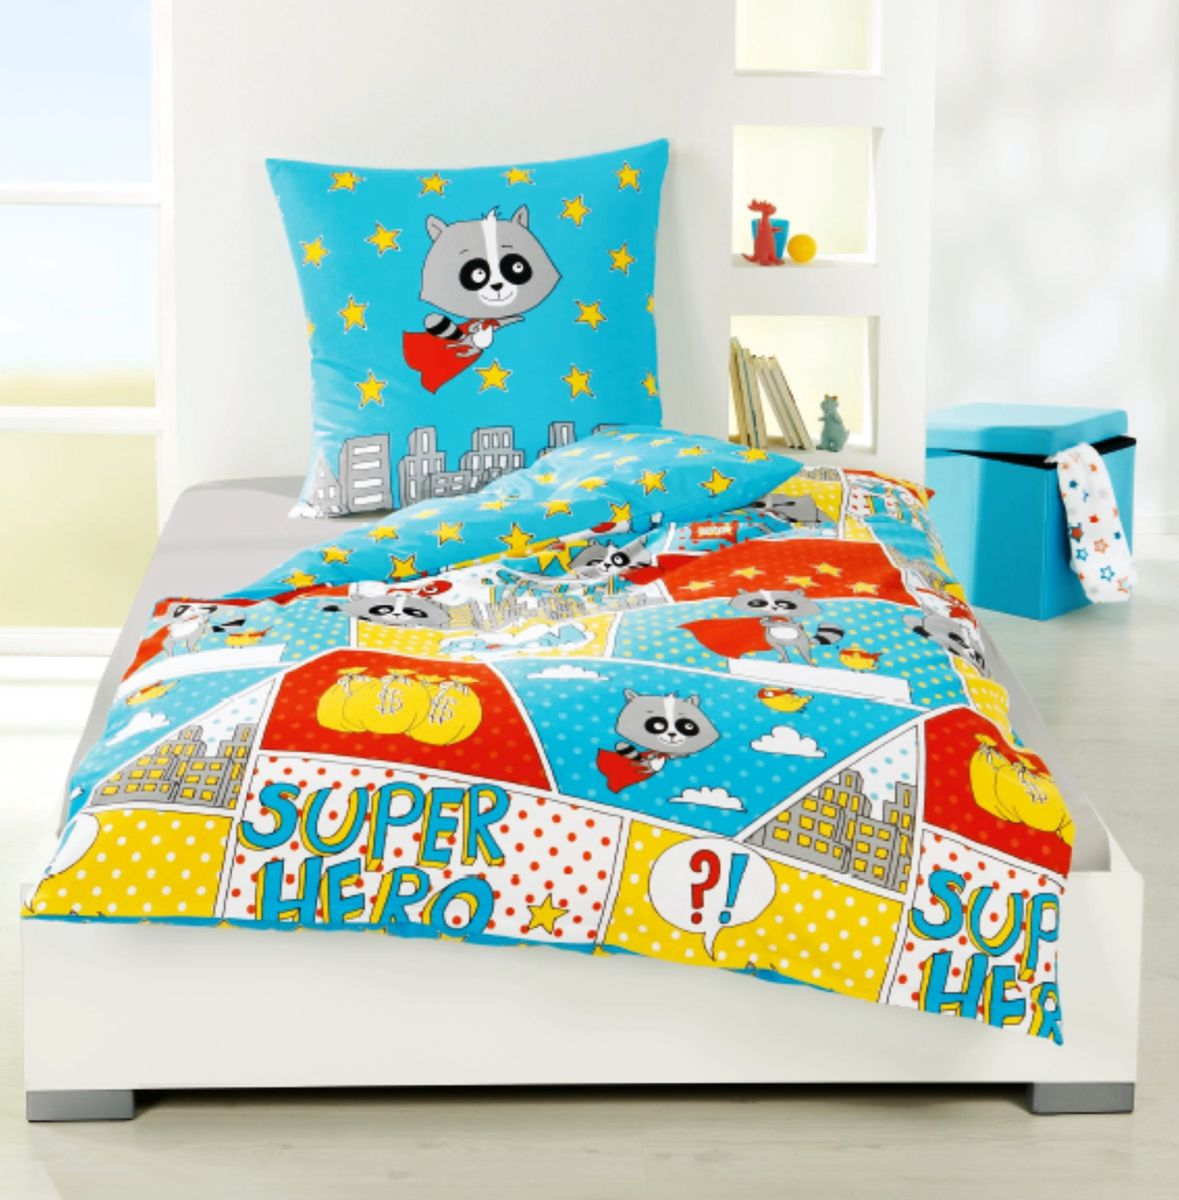 bierbaum fein biber kinder bettw sche 135x200cm 2 tlg super hero sale. Black Bedroom Furniture Sets. Home Design Ideas